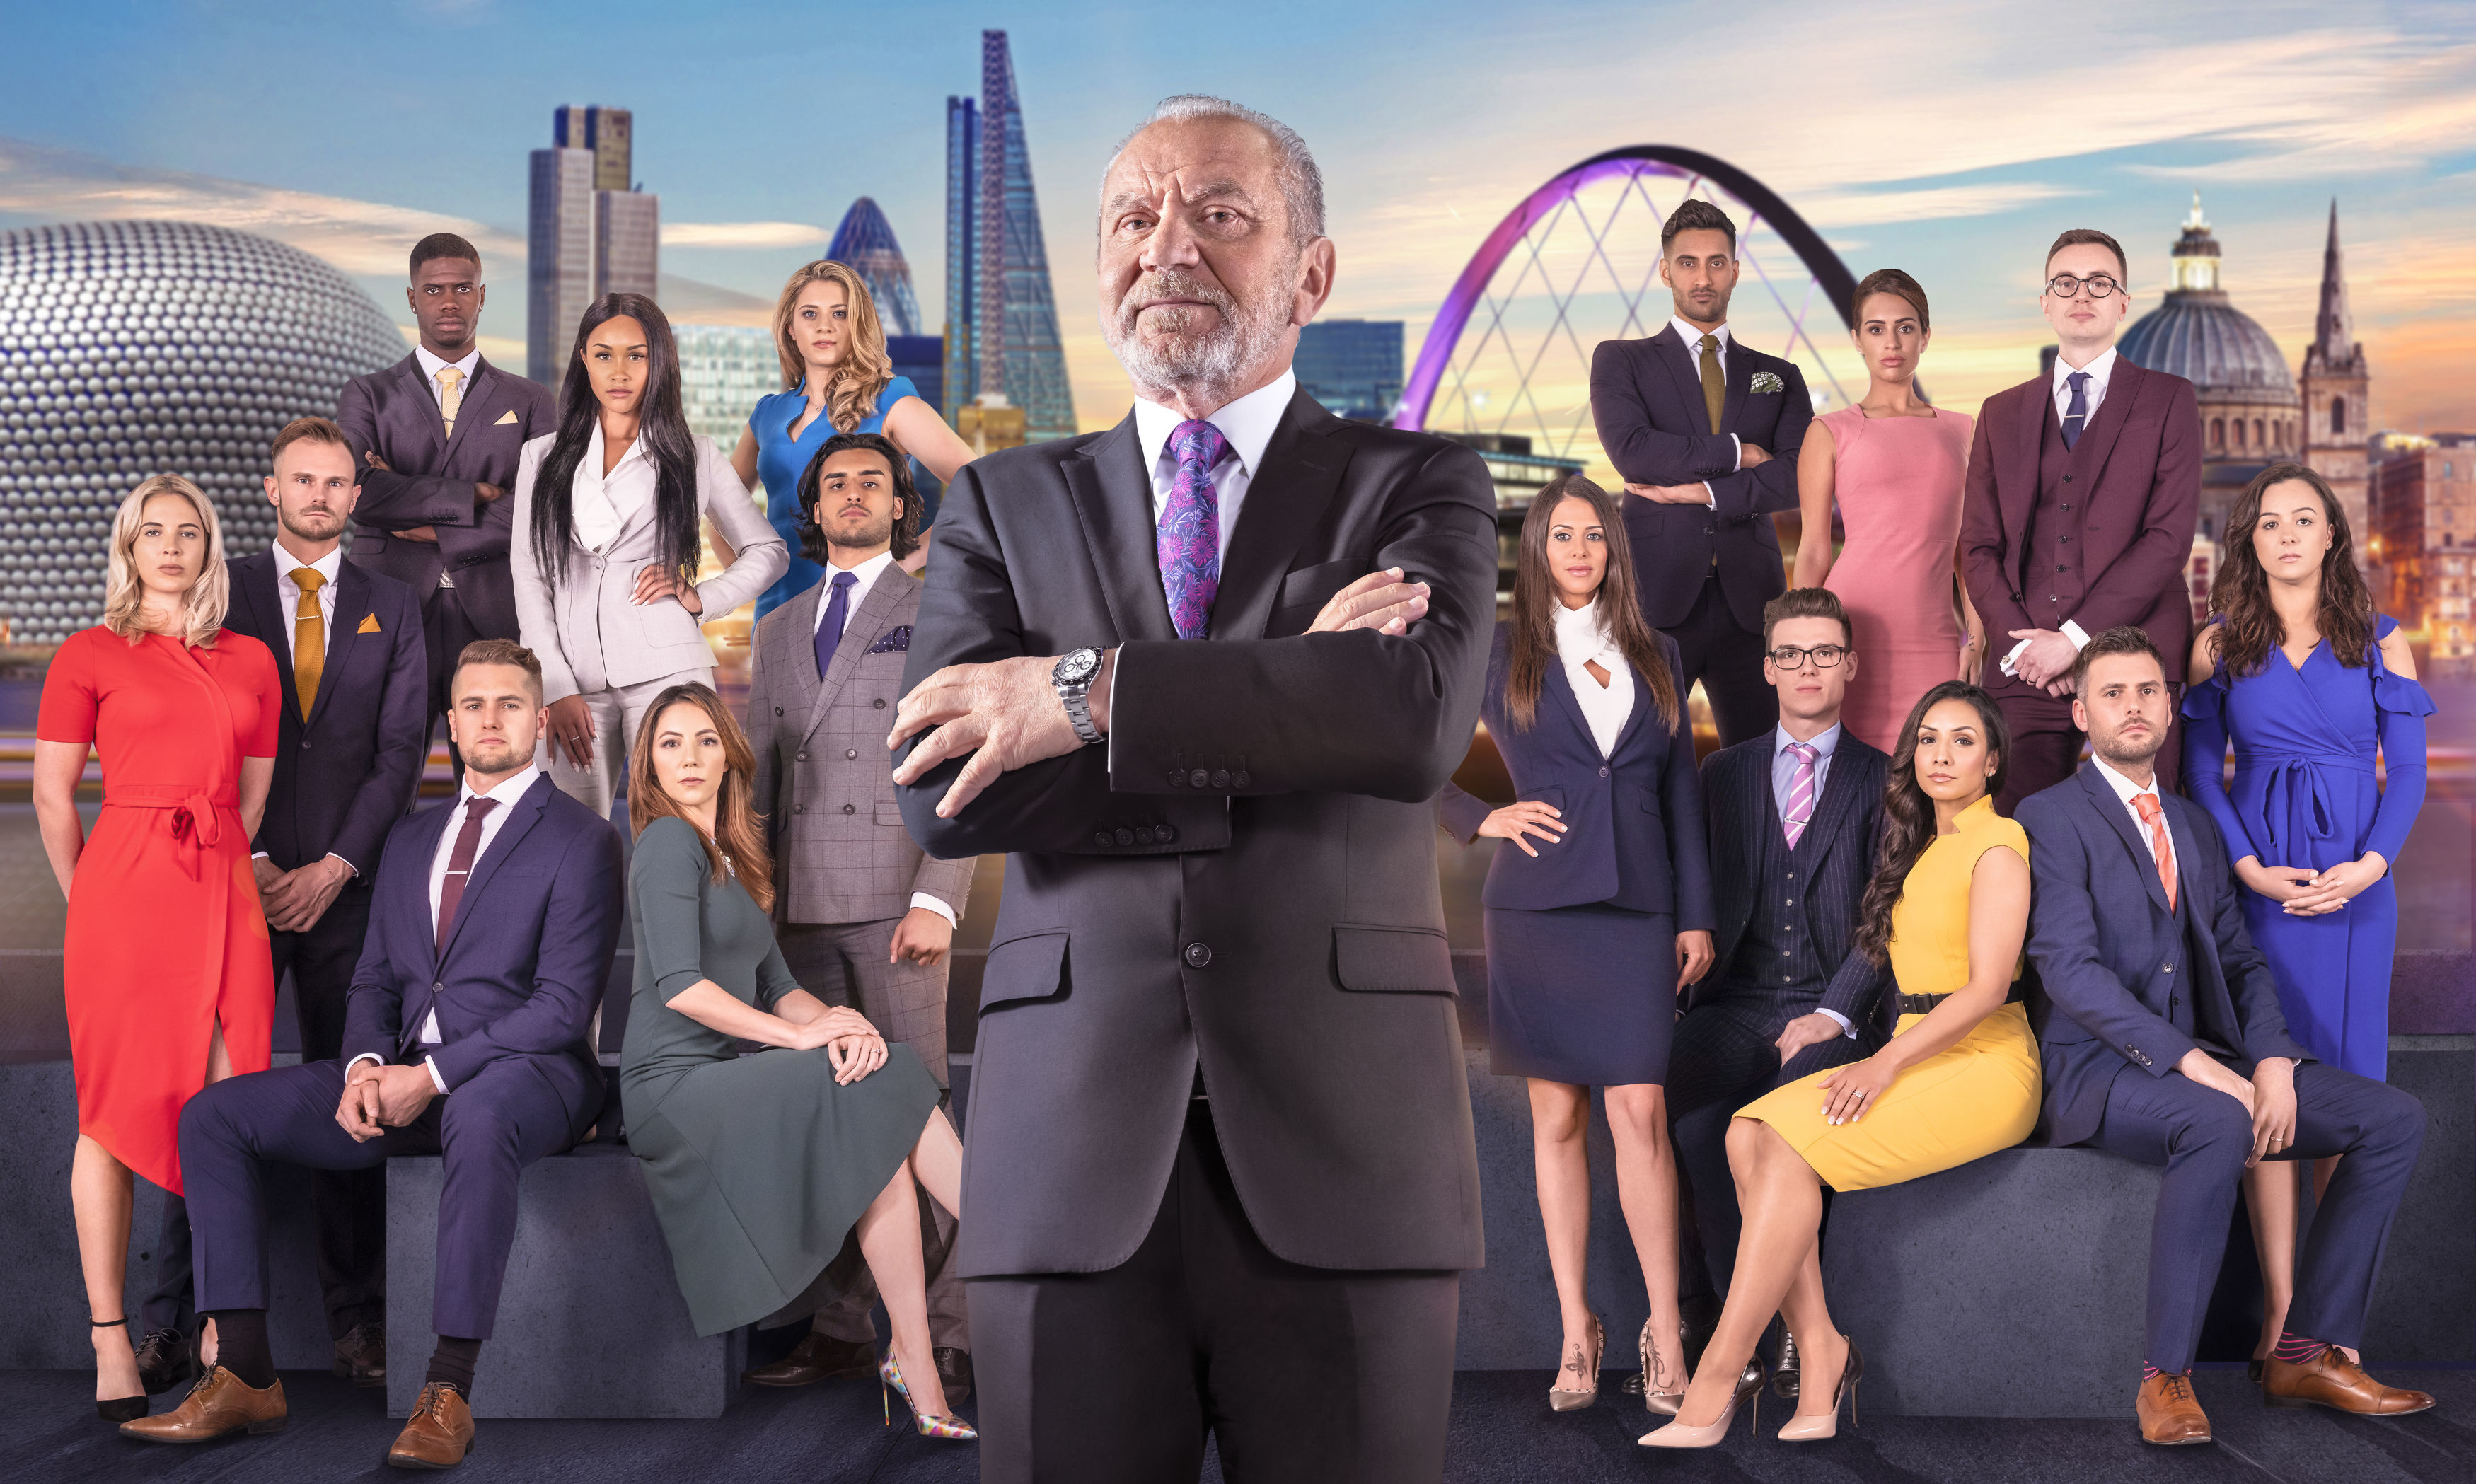 Lord Sugar and this year's candidates (BBC / PA Wire)